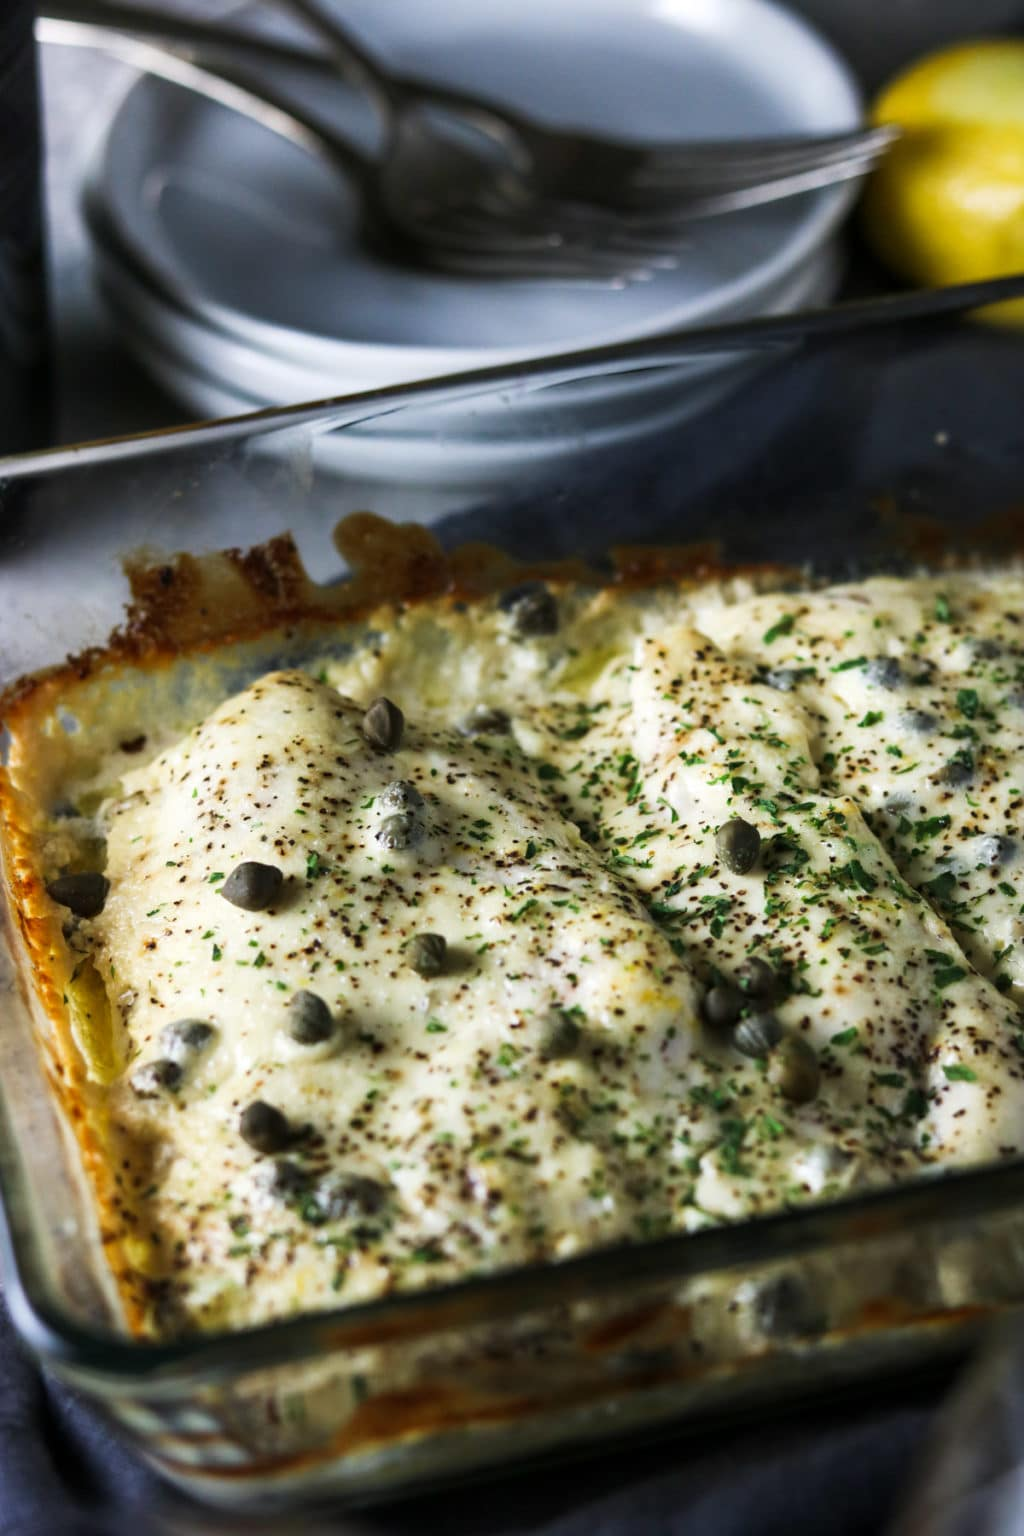 chicken breast, baked and covered in a cream sauce and capers